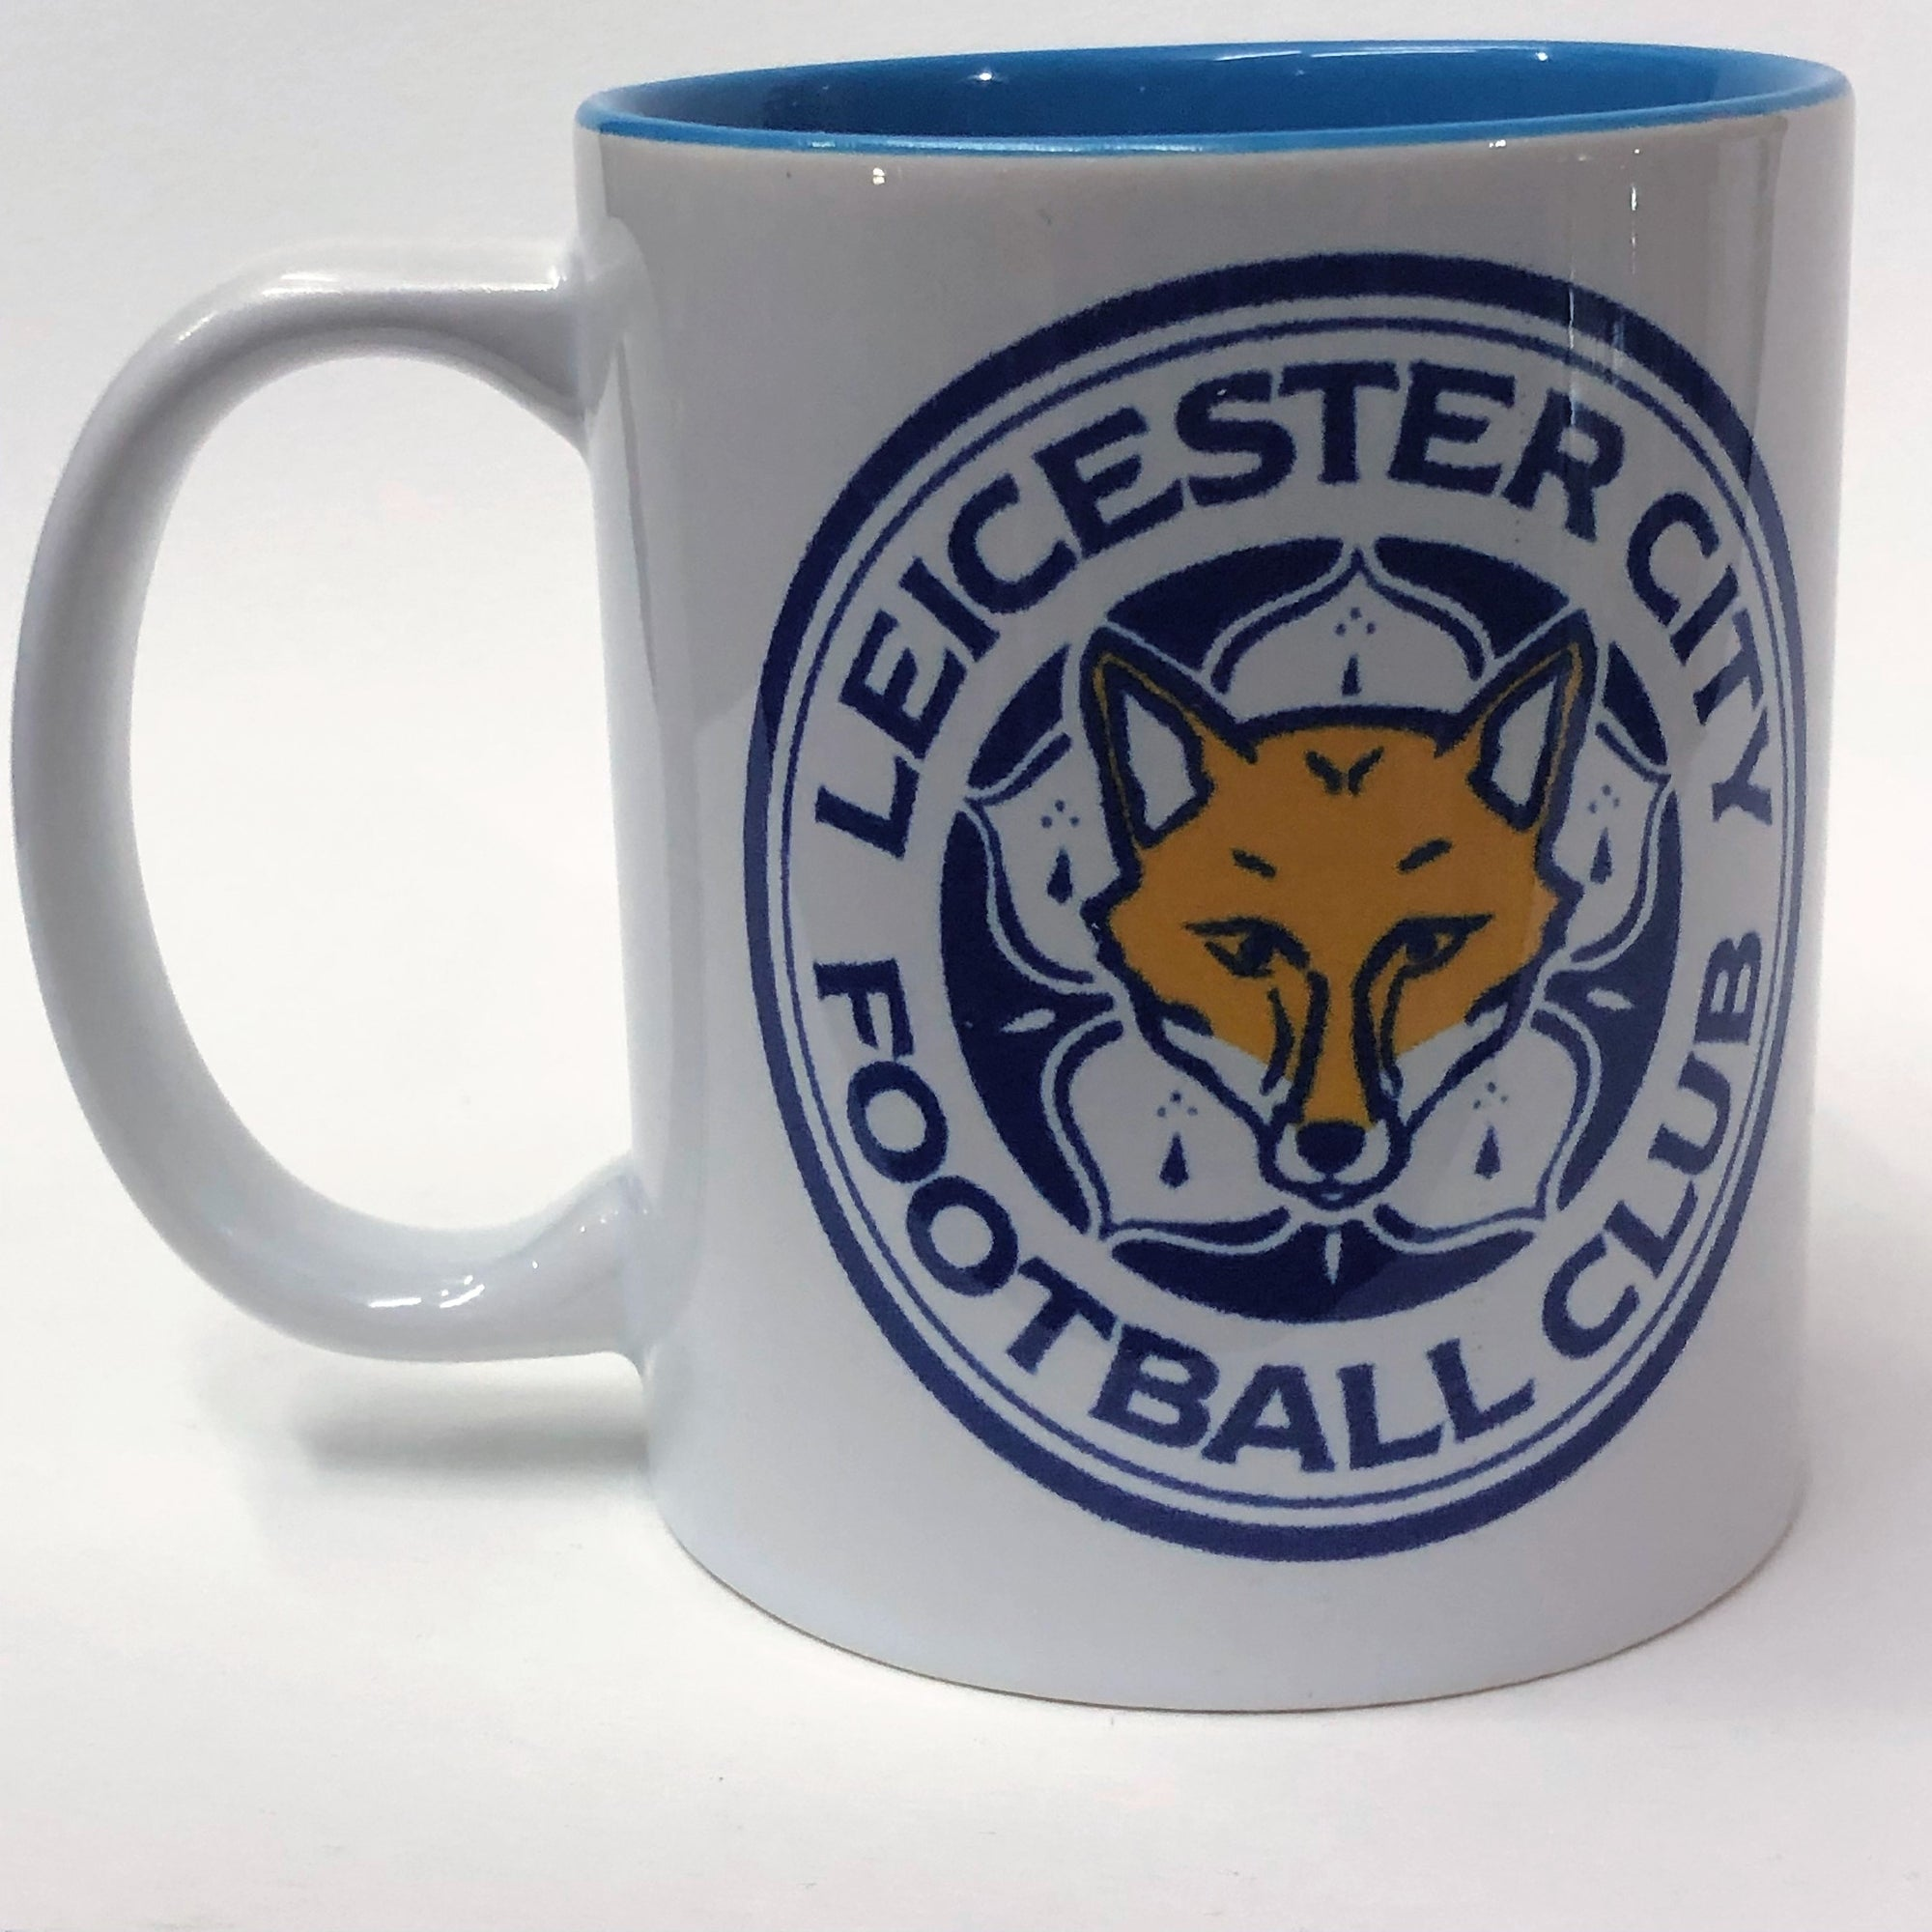 Leicester City Coffee Mug